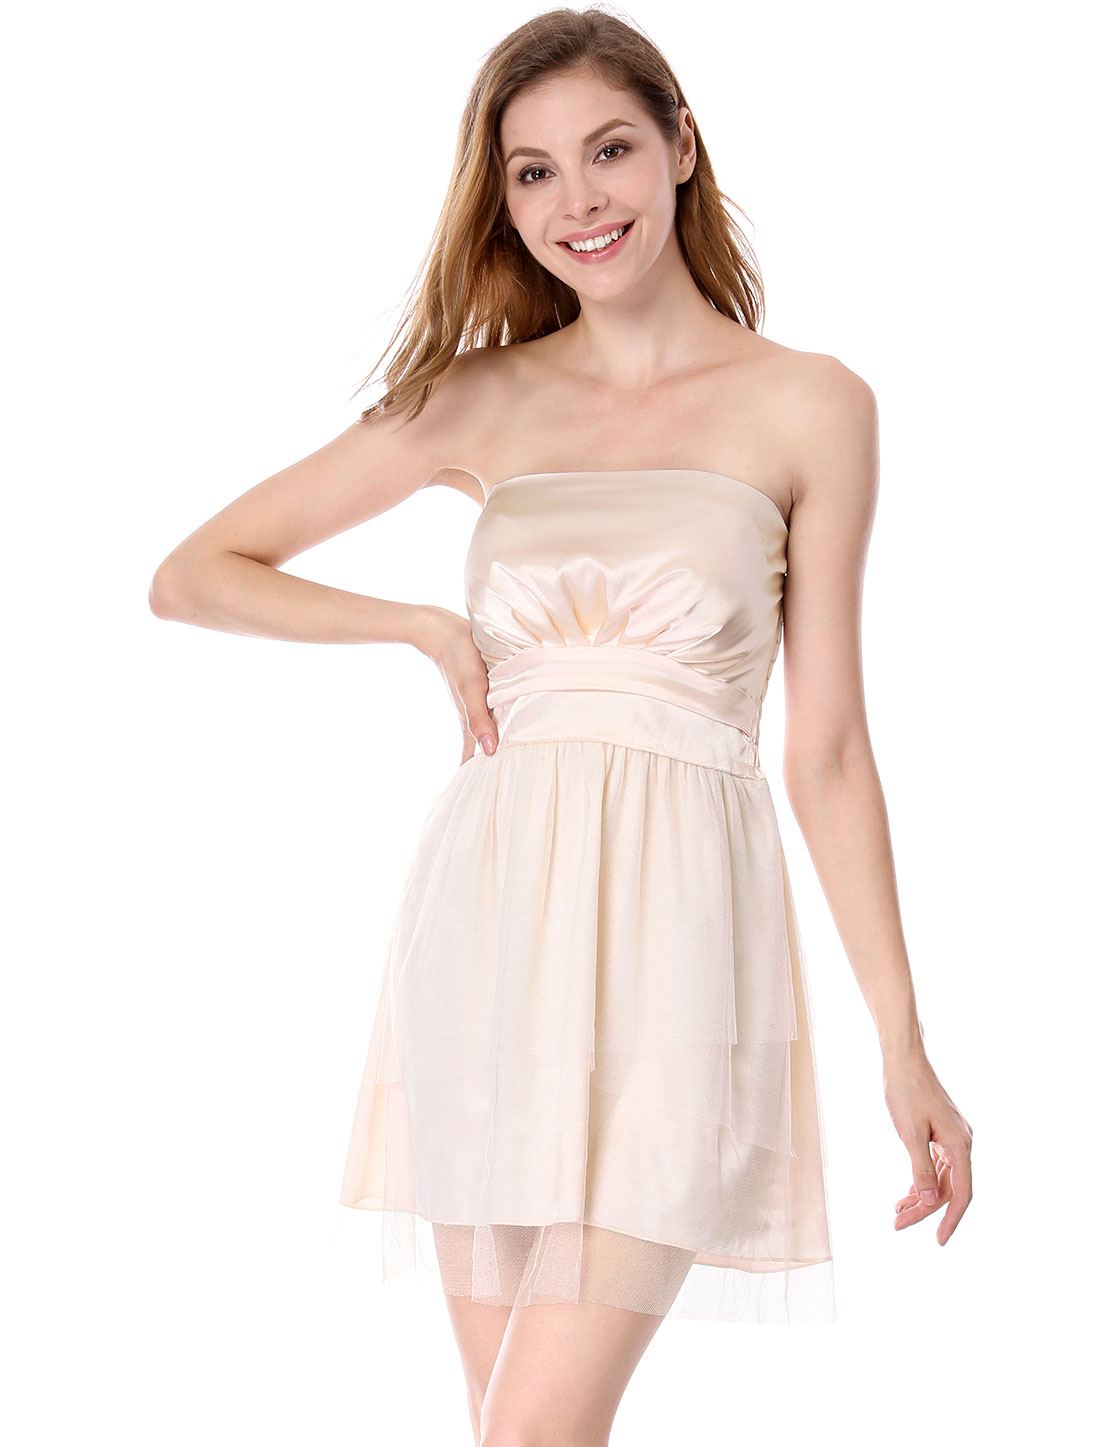 Women Smocked Back Strapless Short Tube Dress Beige XS